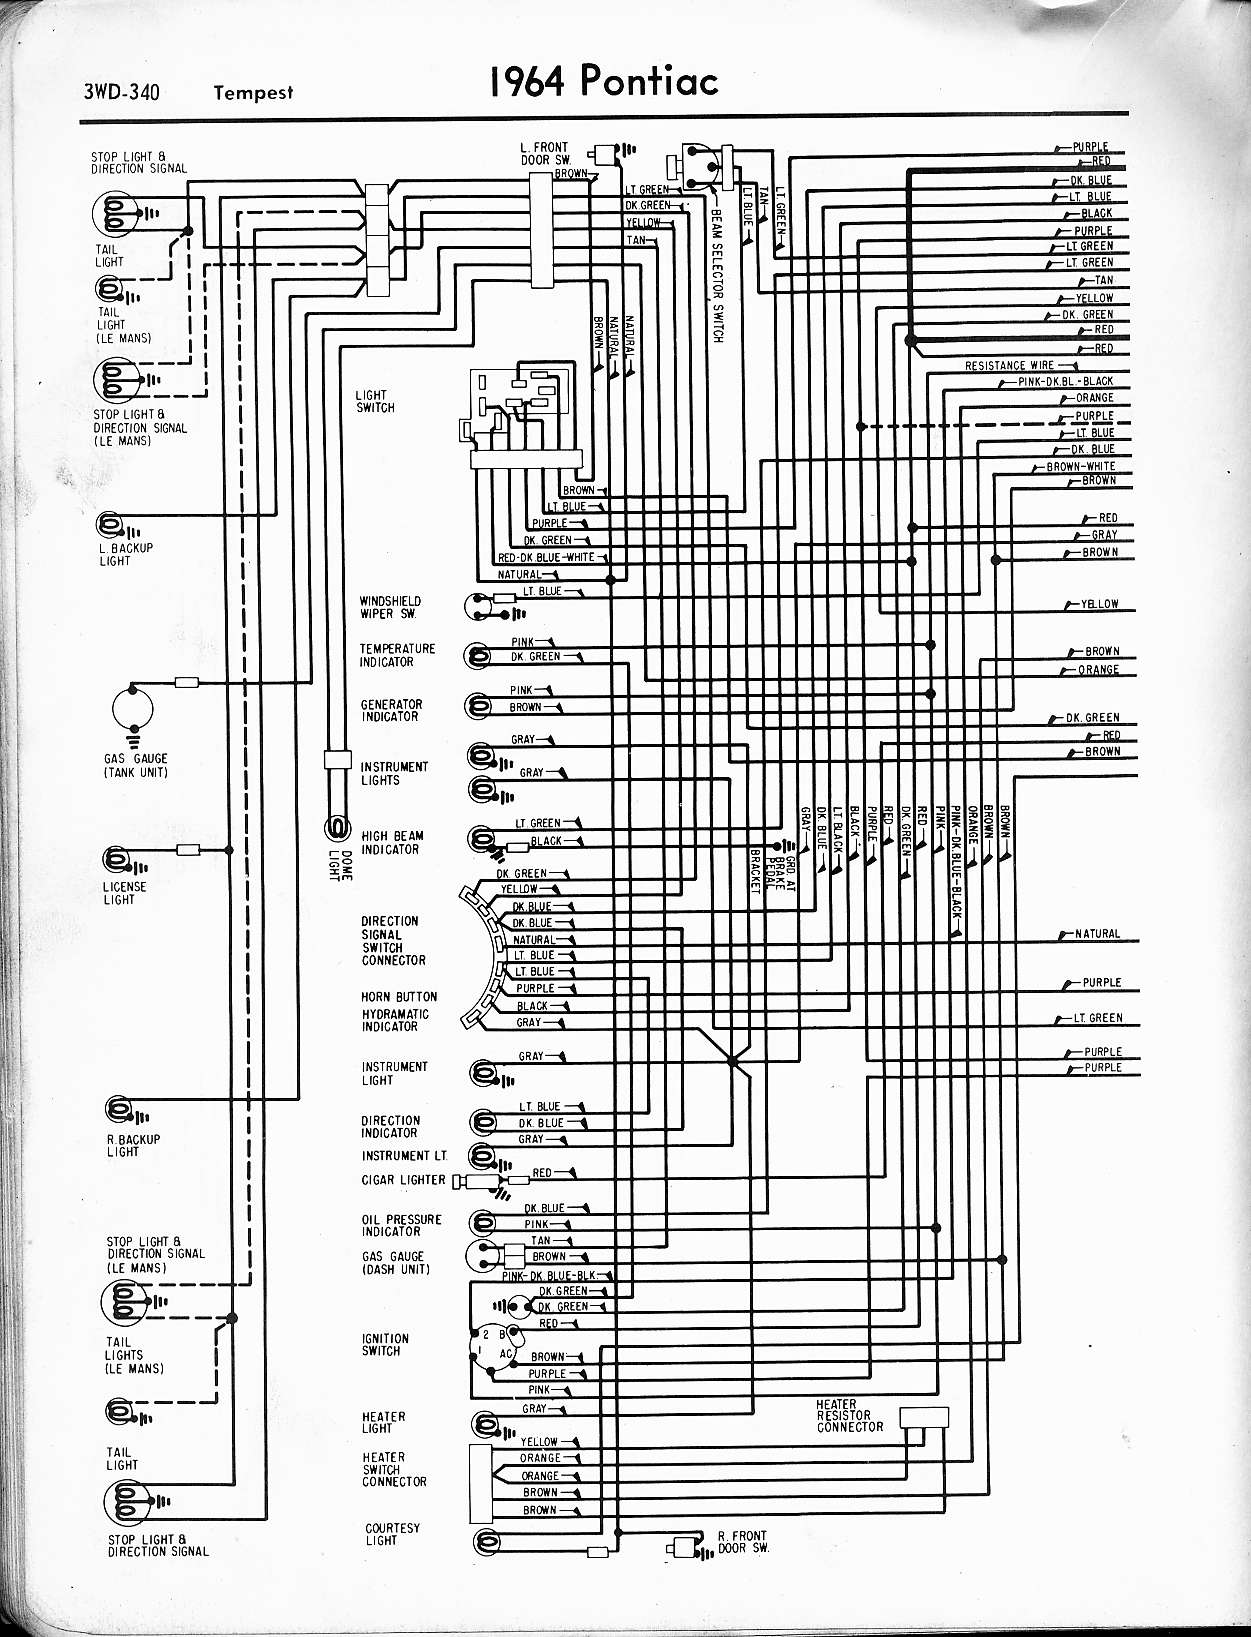 2004 Pontiac Gto Wiring Schematic Diagram Will Be A Thing 2000 Montana Radio 1964 Chevy Coil Diagrams Detailed Schematics Rh Jvpacks Com 2009 G6